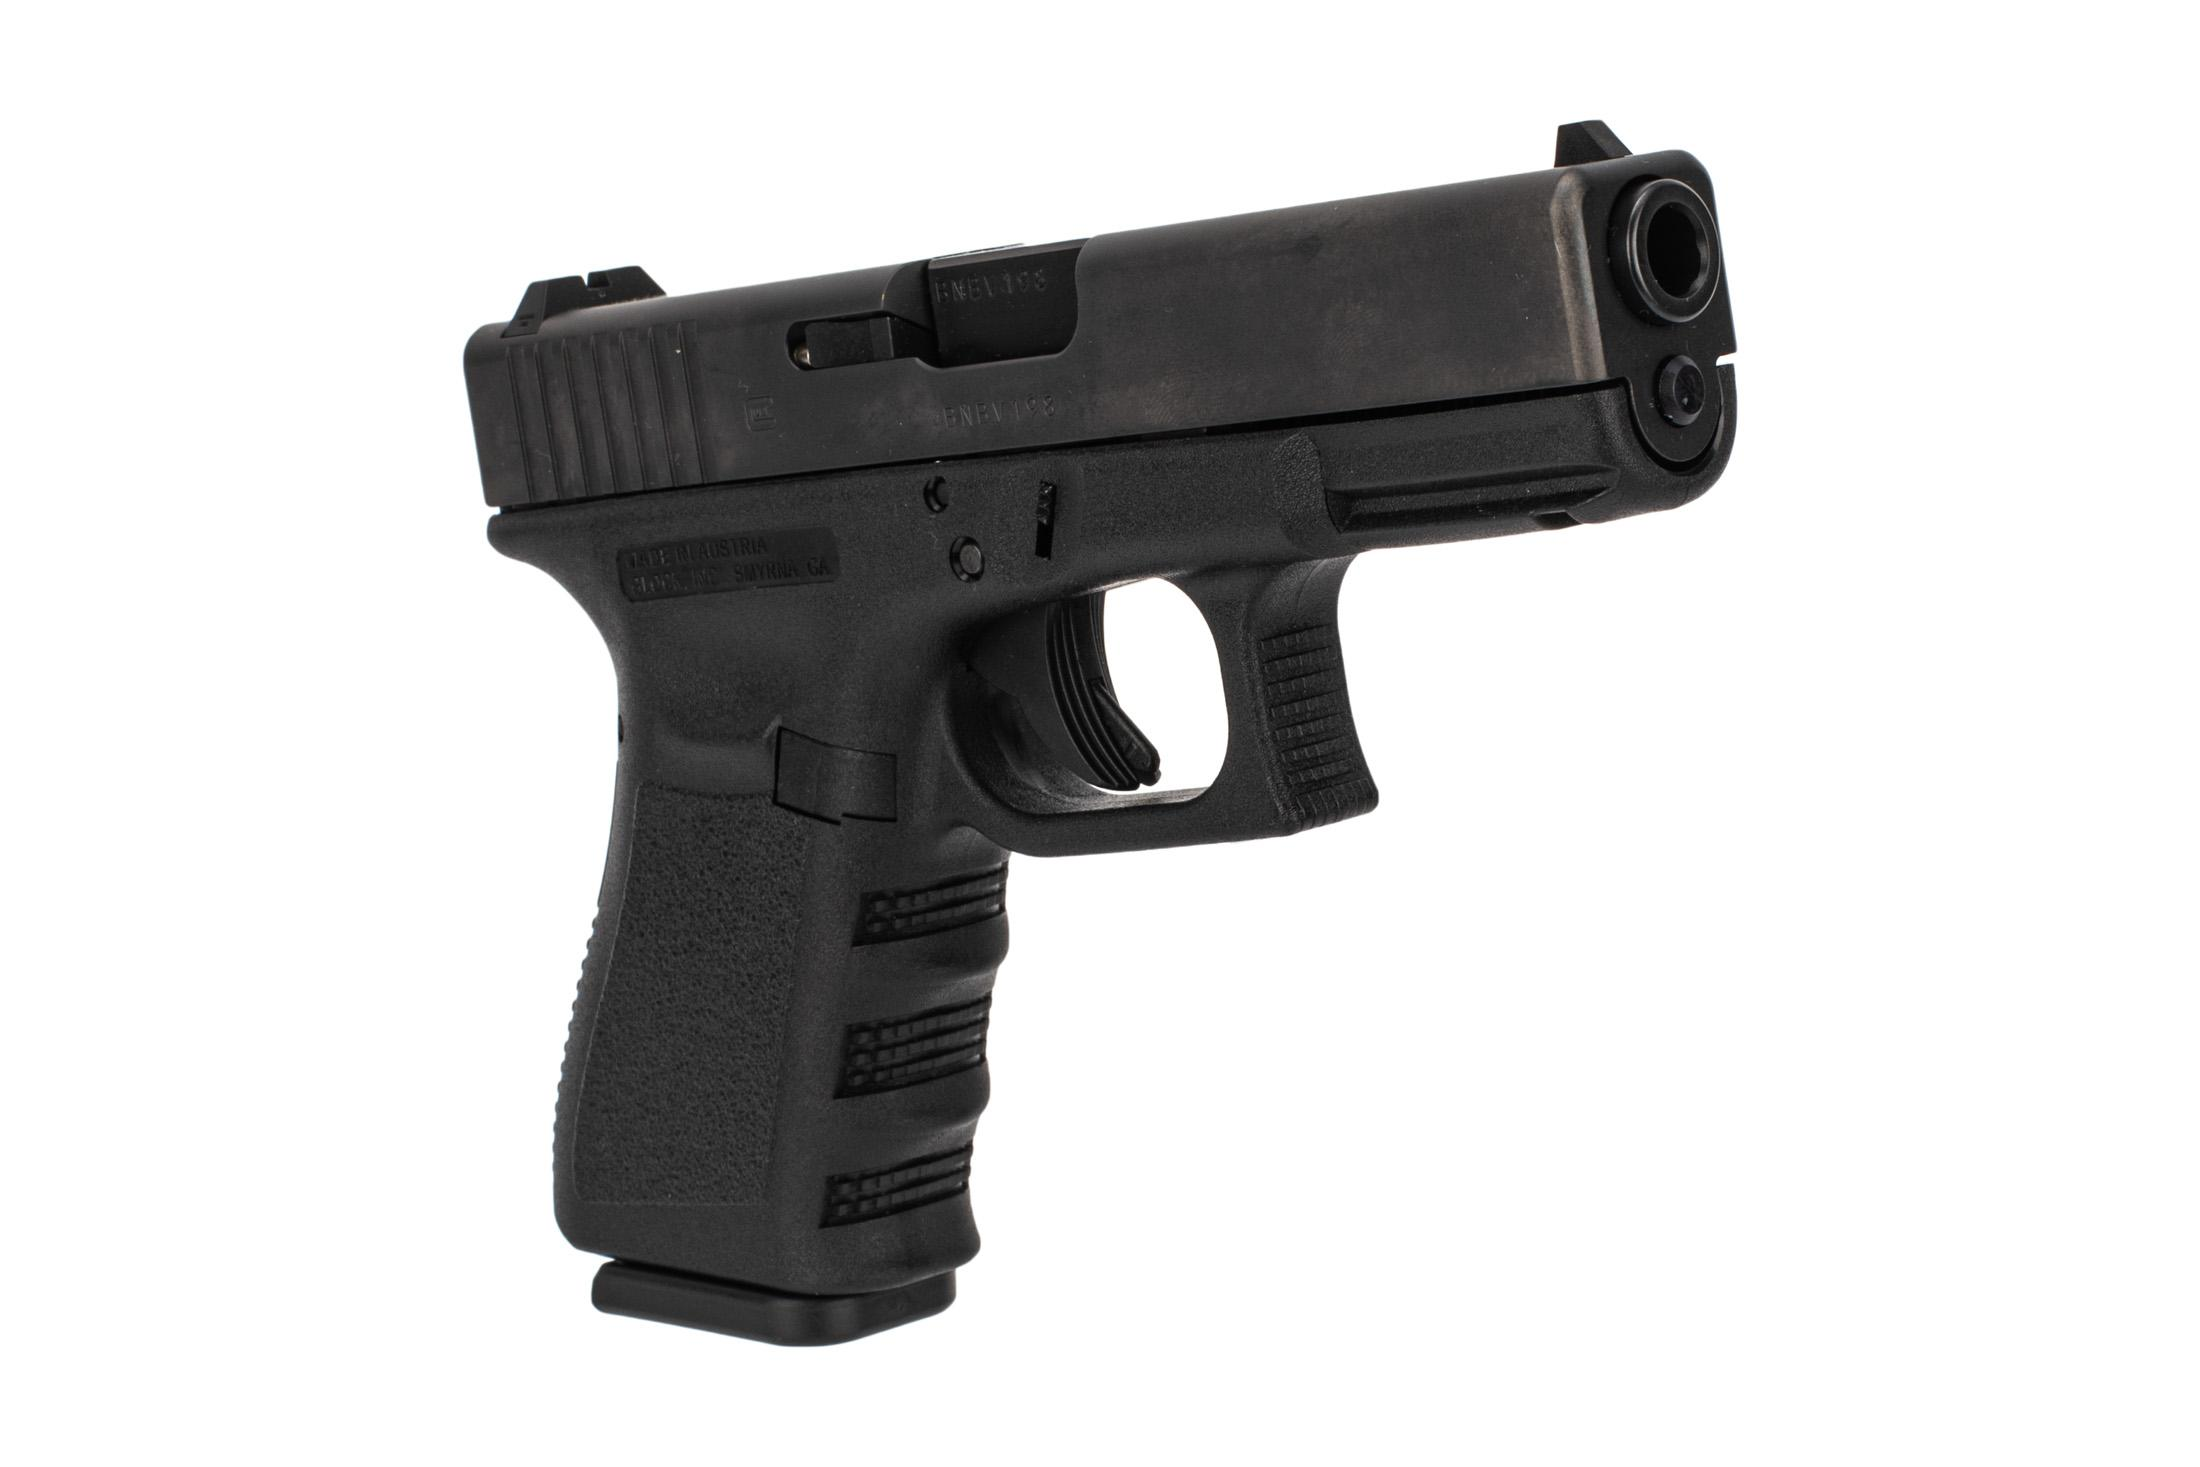 Glock G19 Gen3 9mm compact polymer frame handgun with standard sights and 10-round mags.